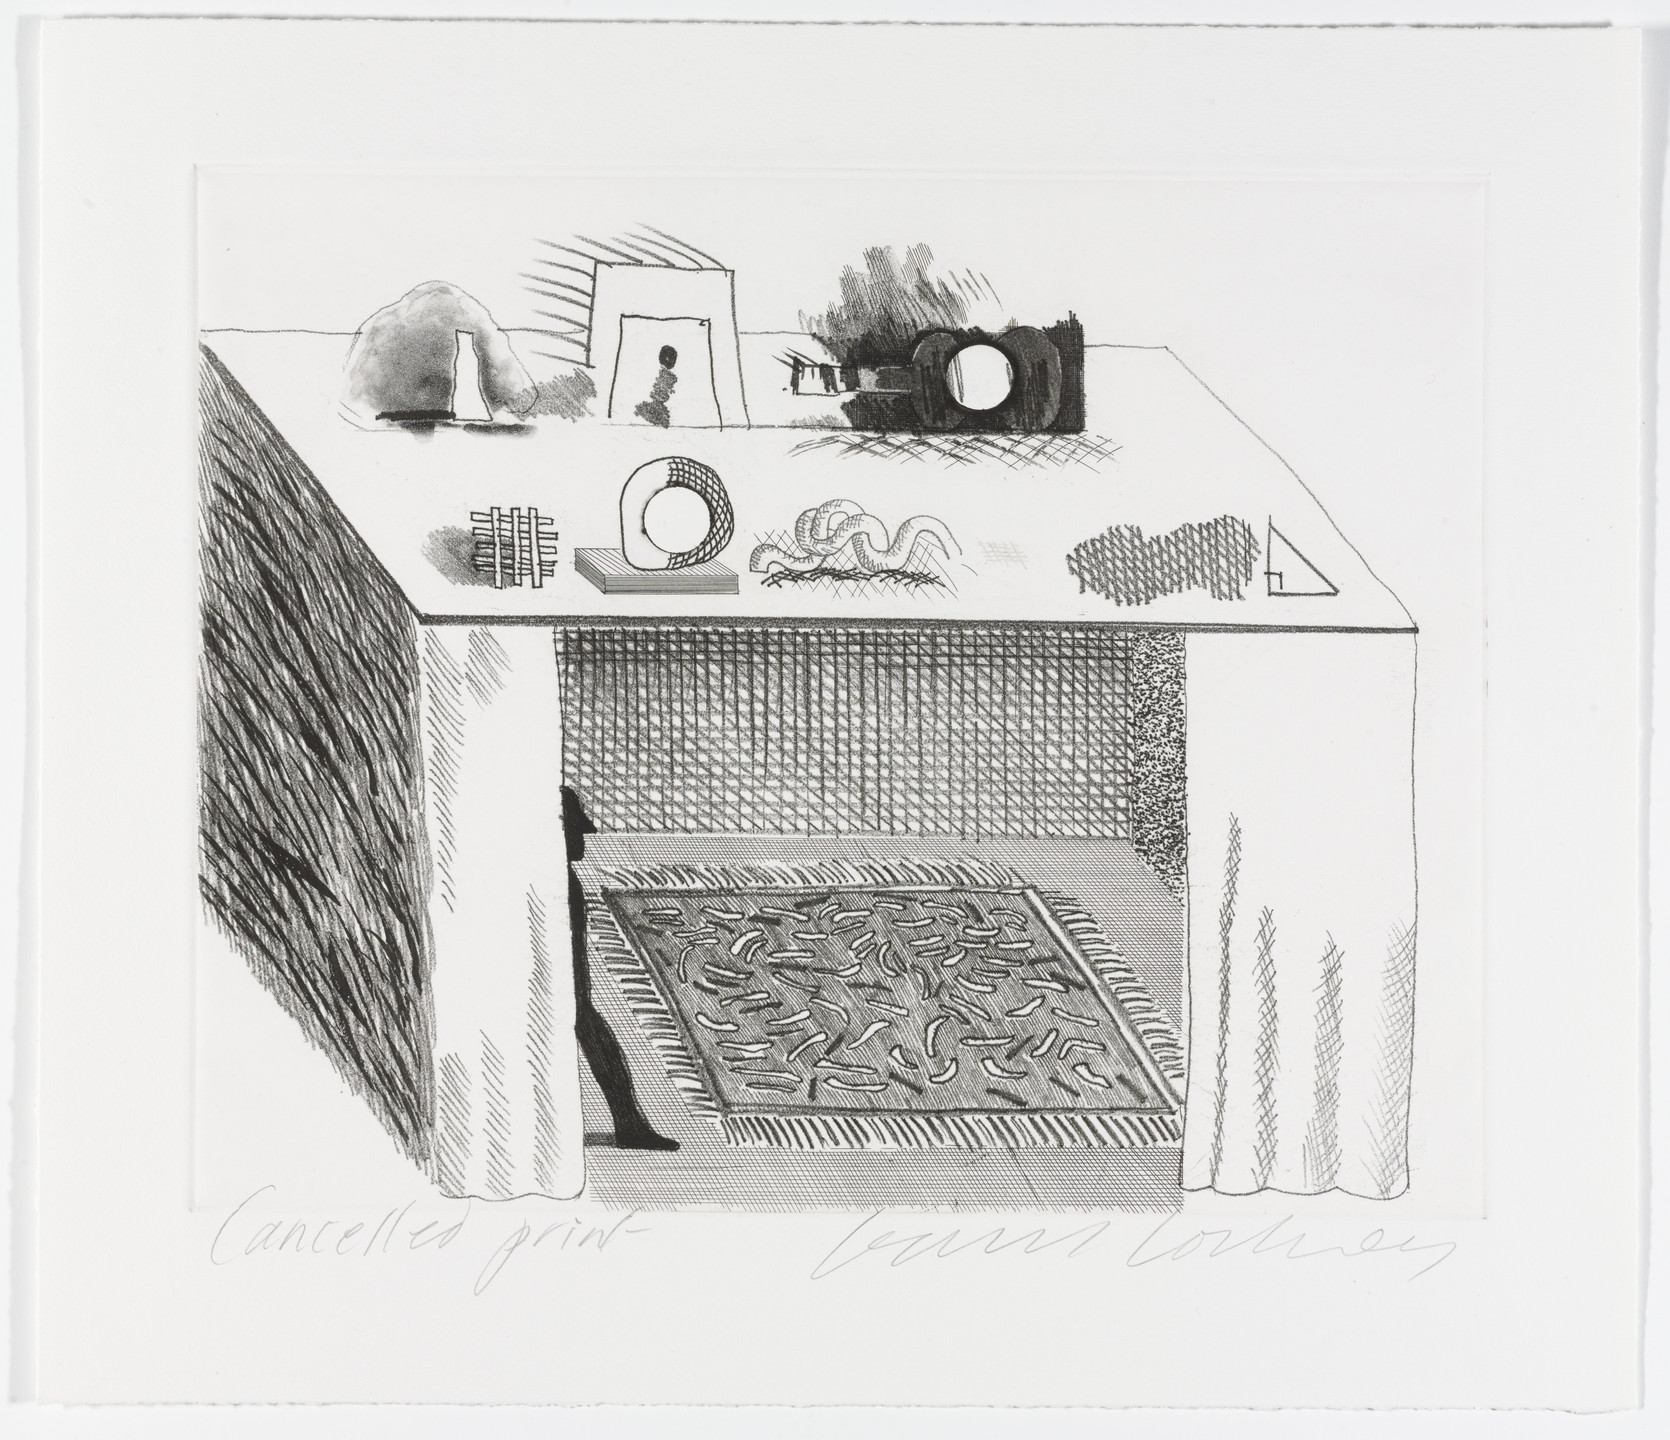 David Hockney. Cancellation proof for In a Chiaroscuro from The Blue Guitar. 1977